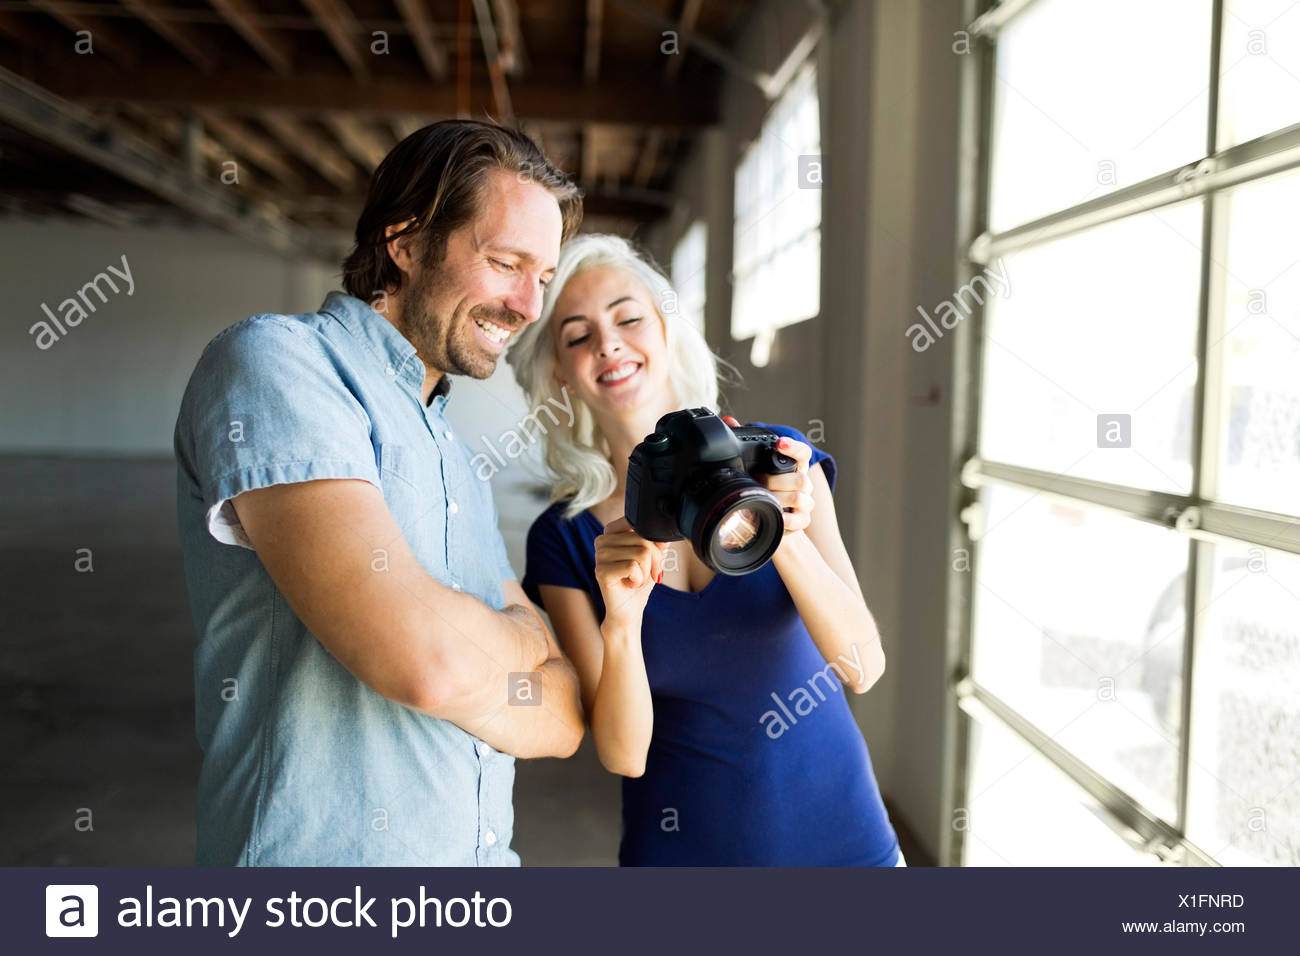 Woman and man looking at pictures in digital camera - Stock Image